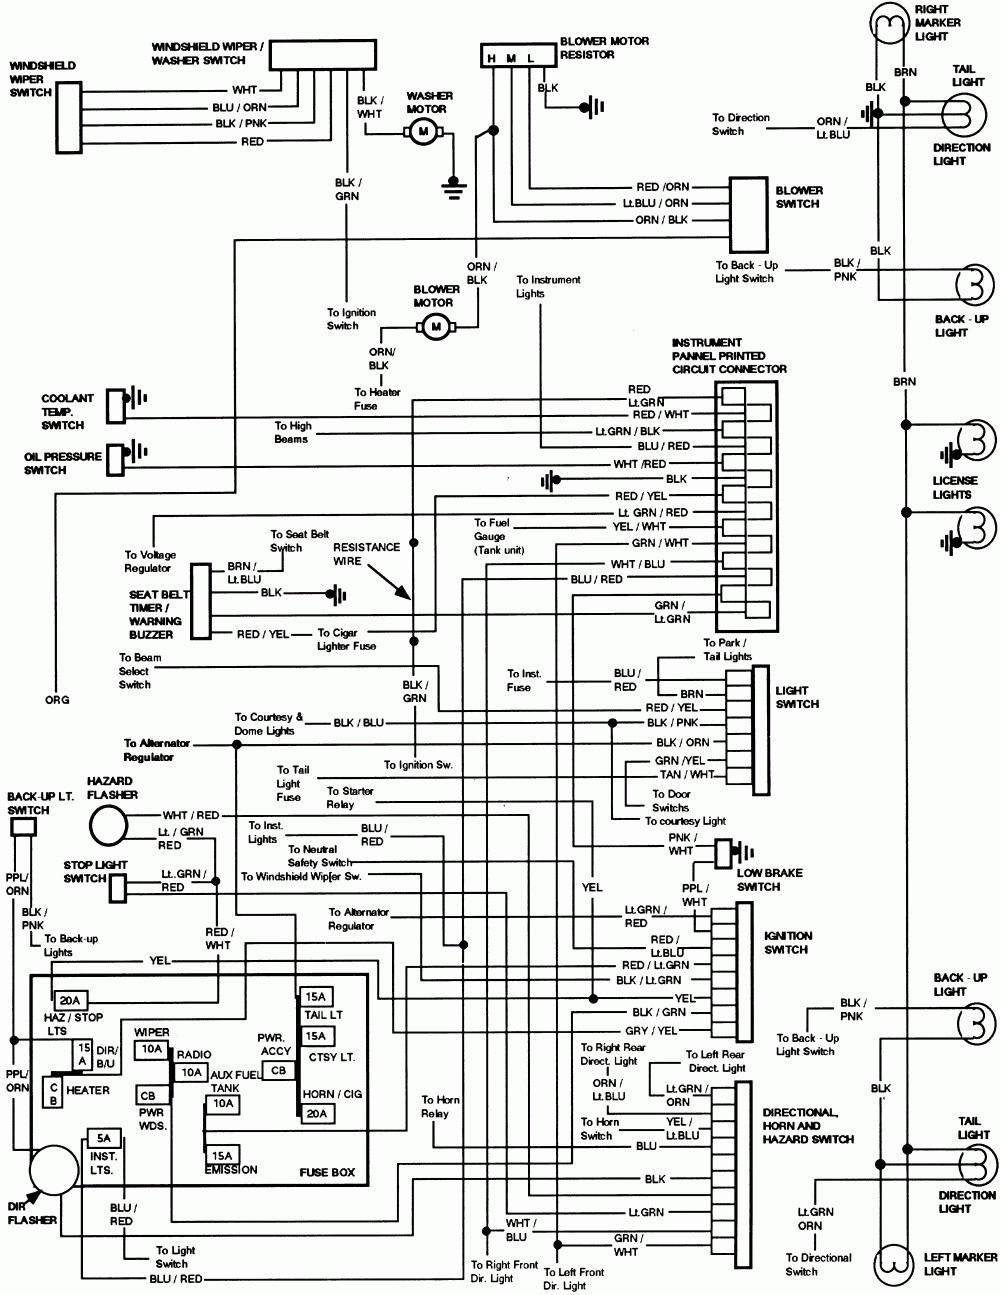 hight resolution of wiring diagram 1982 f 250 302 wiring diagram schematics 2004 ford f 150 radio wiring diagram 2003 ford f 150 ignition wiring diagram